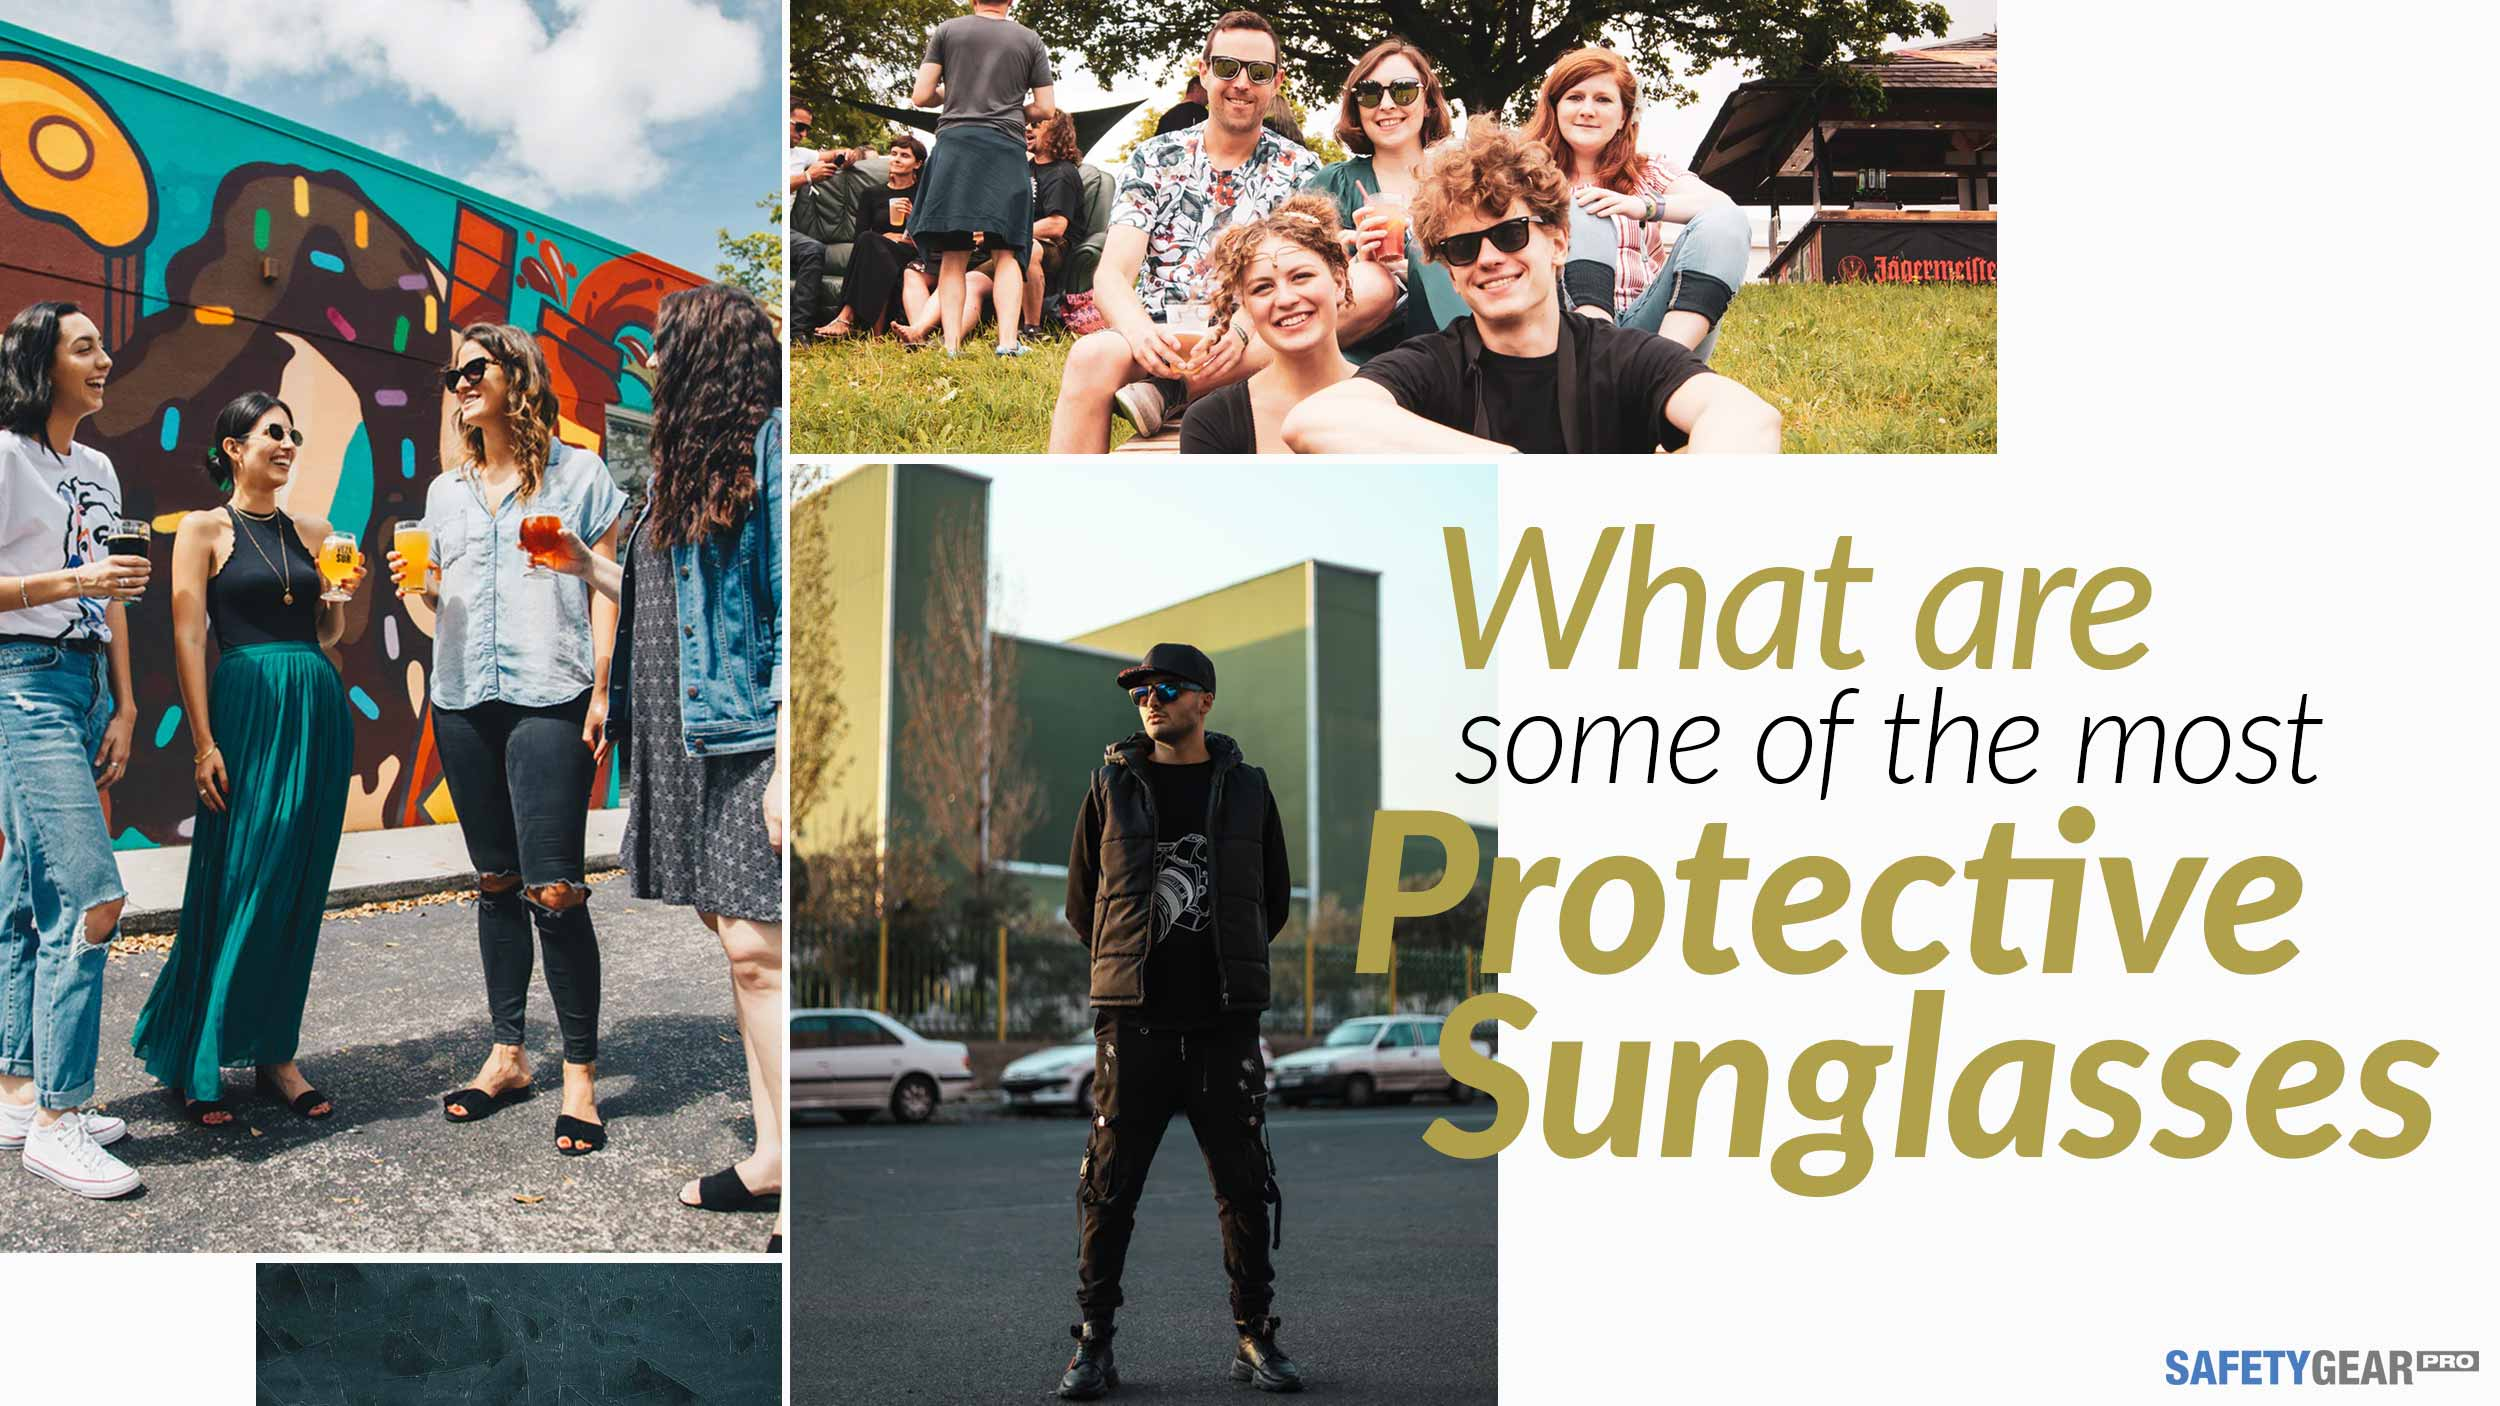 What are some of the most protective sunglasses?